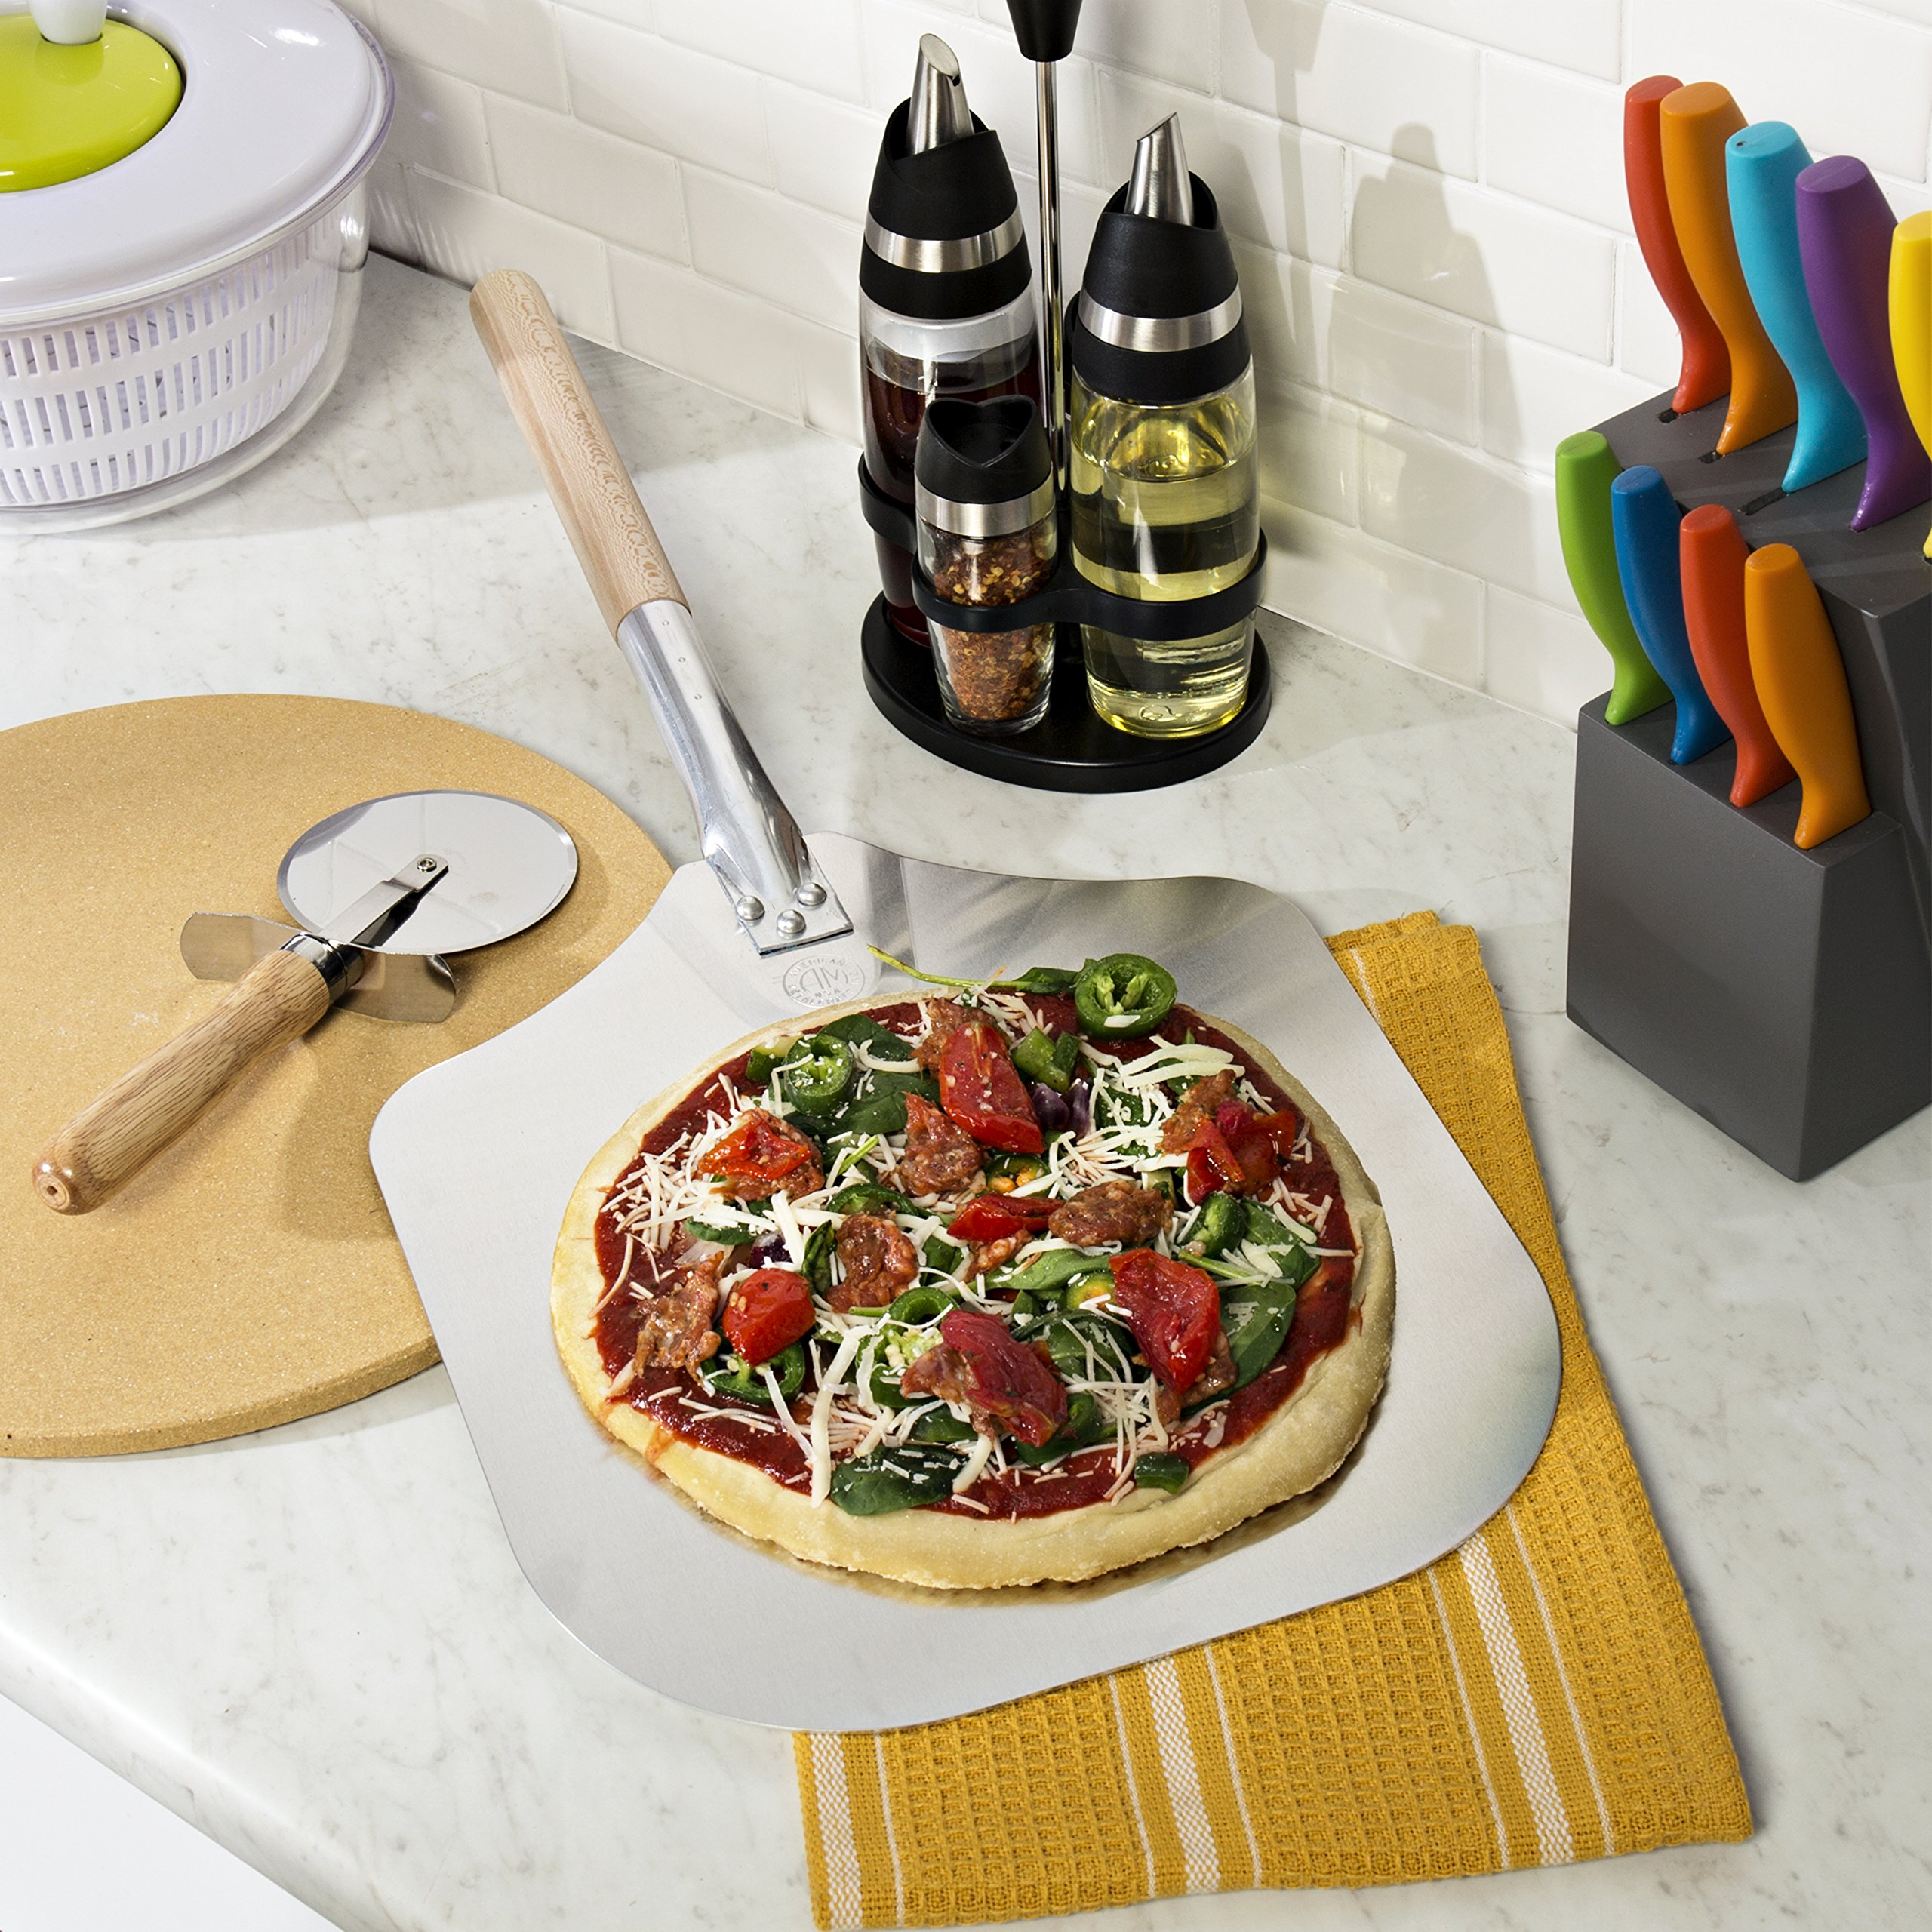 Kitchen Supply 14-Inch x 16-Inch Aluminum Pizza Peel with Wood Handle by Honey-Can-Do (Image #6)